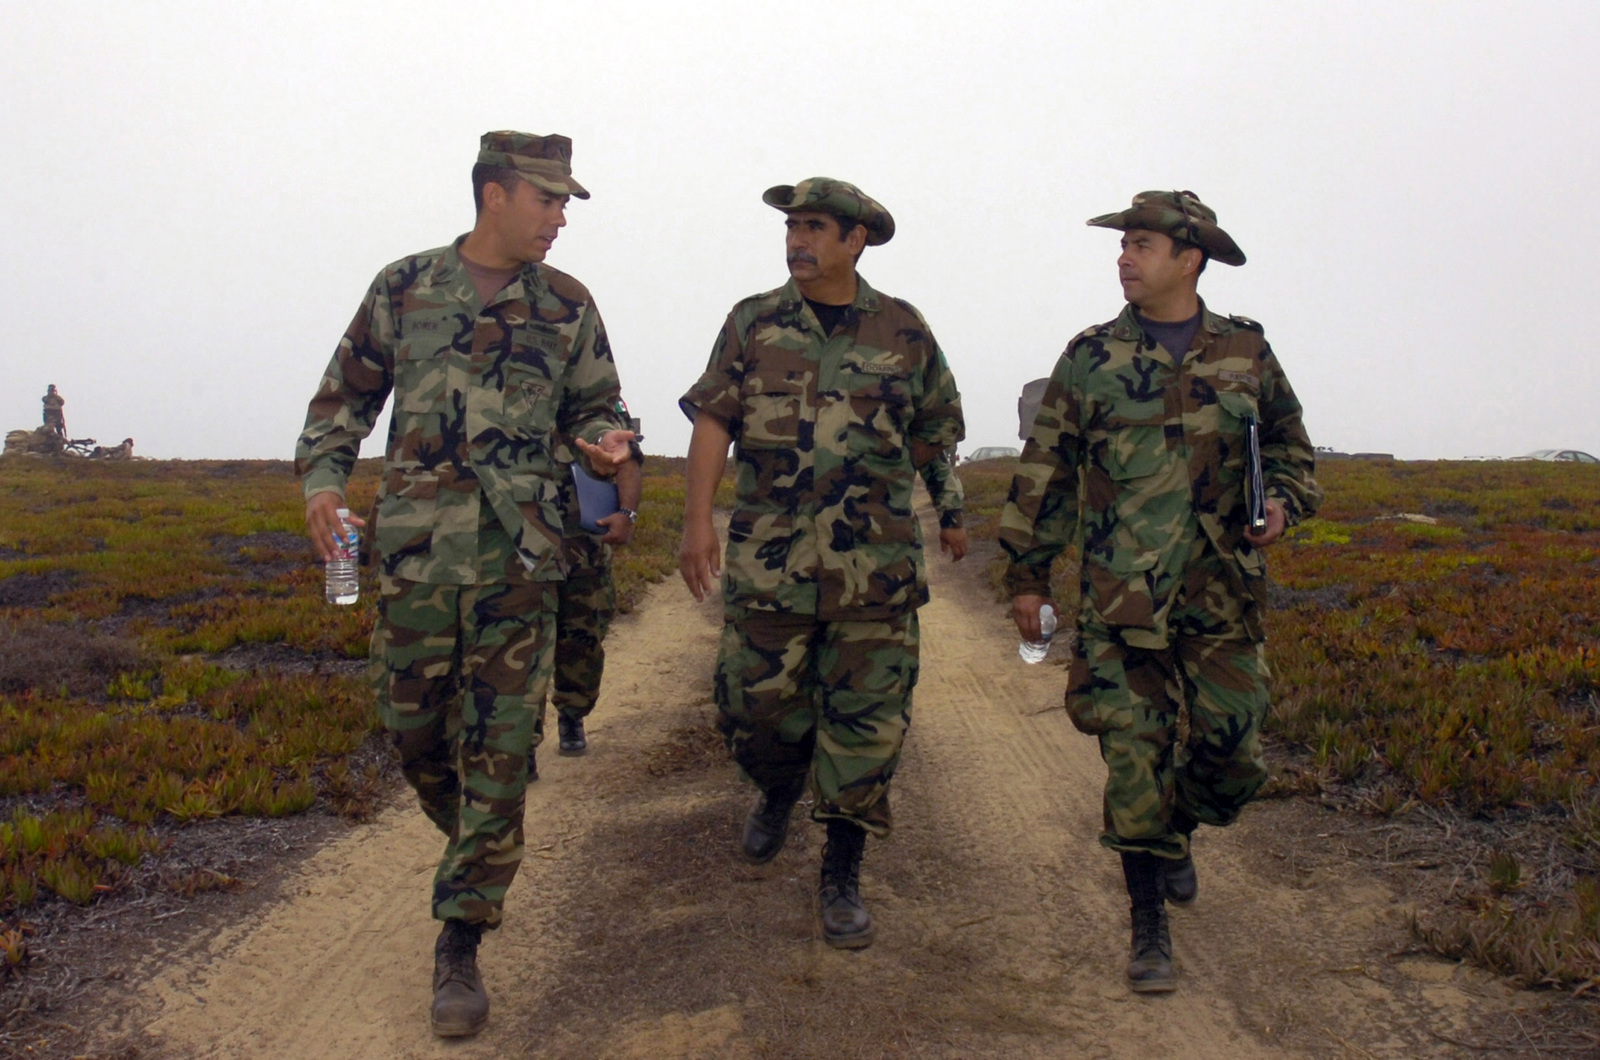 U.S. Navy LT. j.g. Steve Bower, left, from Naval Coastal Warfare Squadron (NCWRON) 5, escorts Mexican Navy officers to observe drills during Exercise Seahawk 2006 at Naval Amphibious Base, Coronado, Calif., on Aug. 29, 2006. Seahawk 2006 is a combined anti-terrorism and force protection training involving units under the U.S. Navy Expeditionary Combat Command (NECC) on the West Coast and Sailors from commands based in California, Washington and Oregon. (U.S. Navy photo by Mass Communication SPECIALIST 2nd Class Jennifer A. Villalovos) (Released)